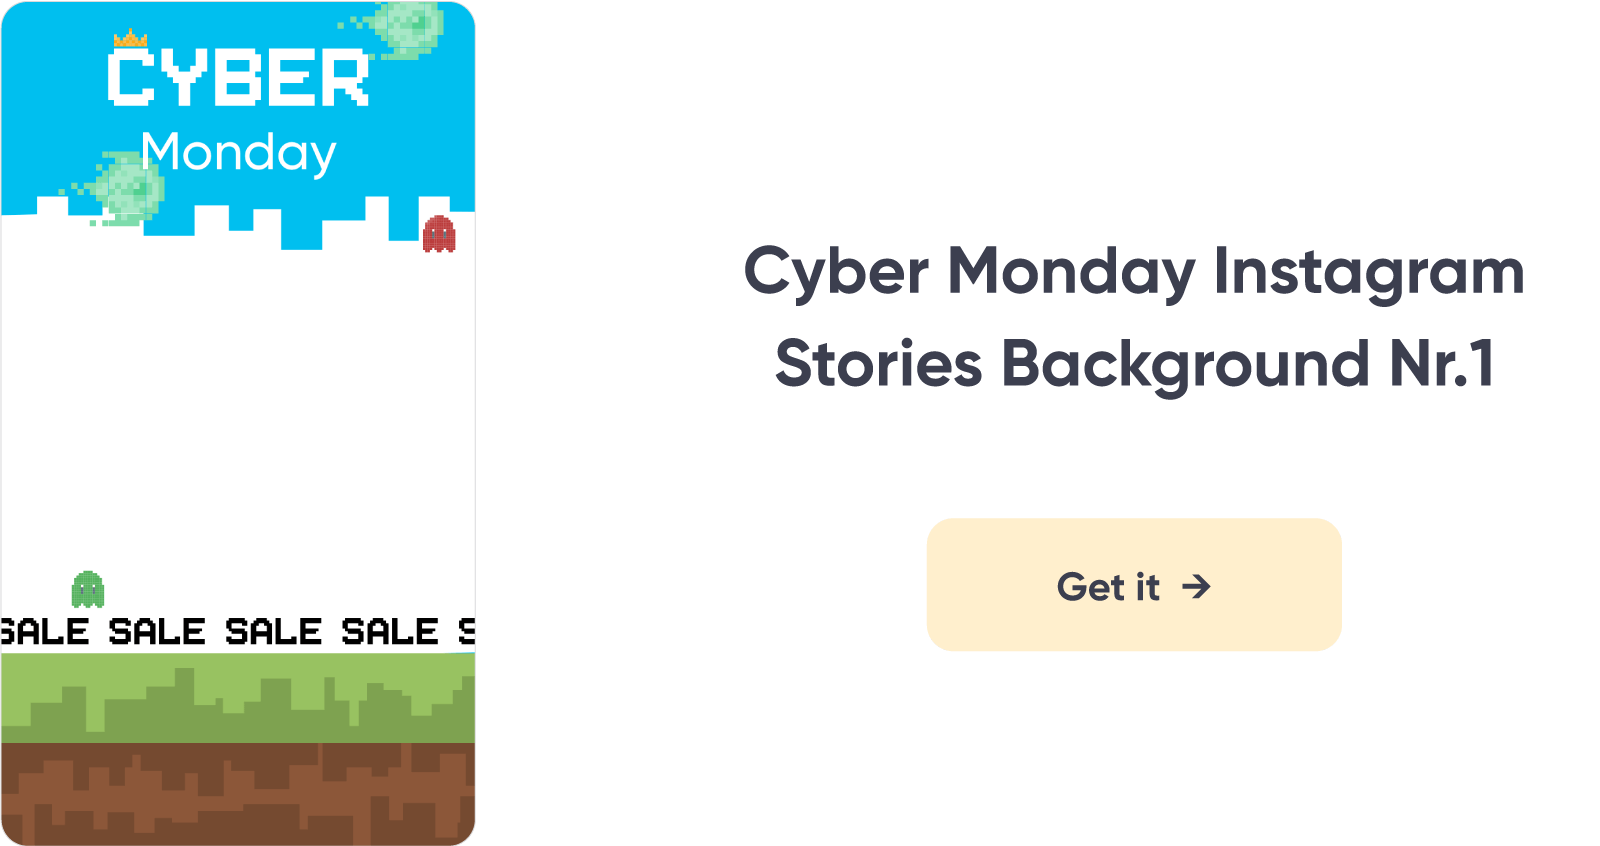 Cyber Monday Instagram Background 1